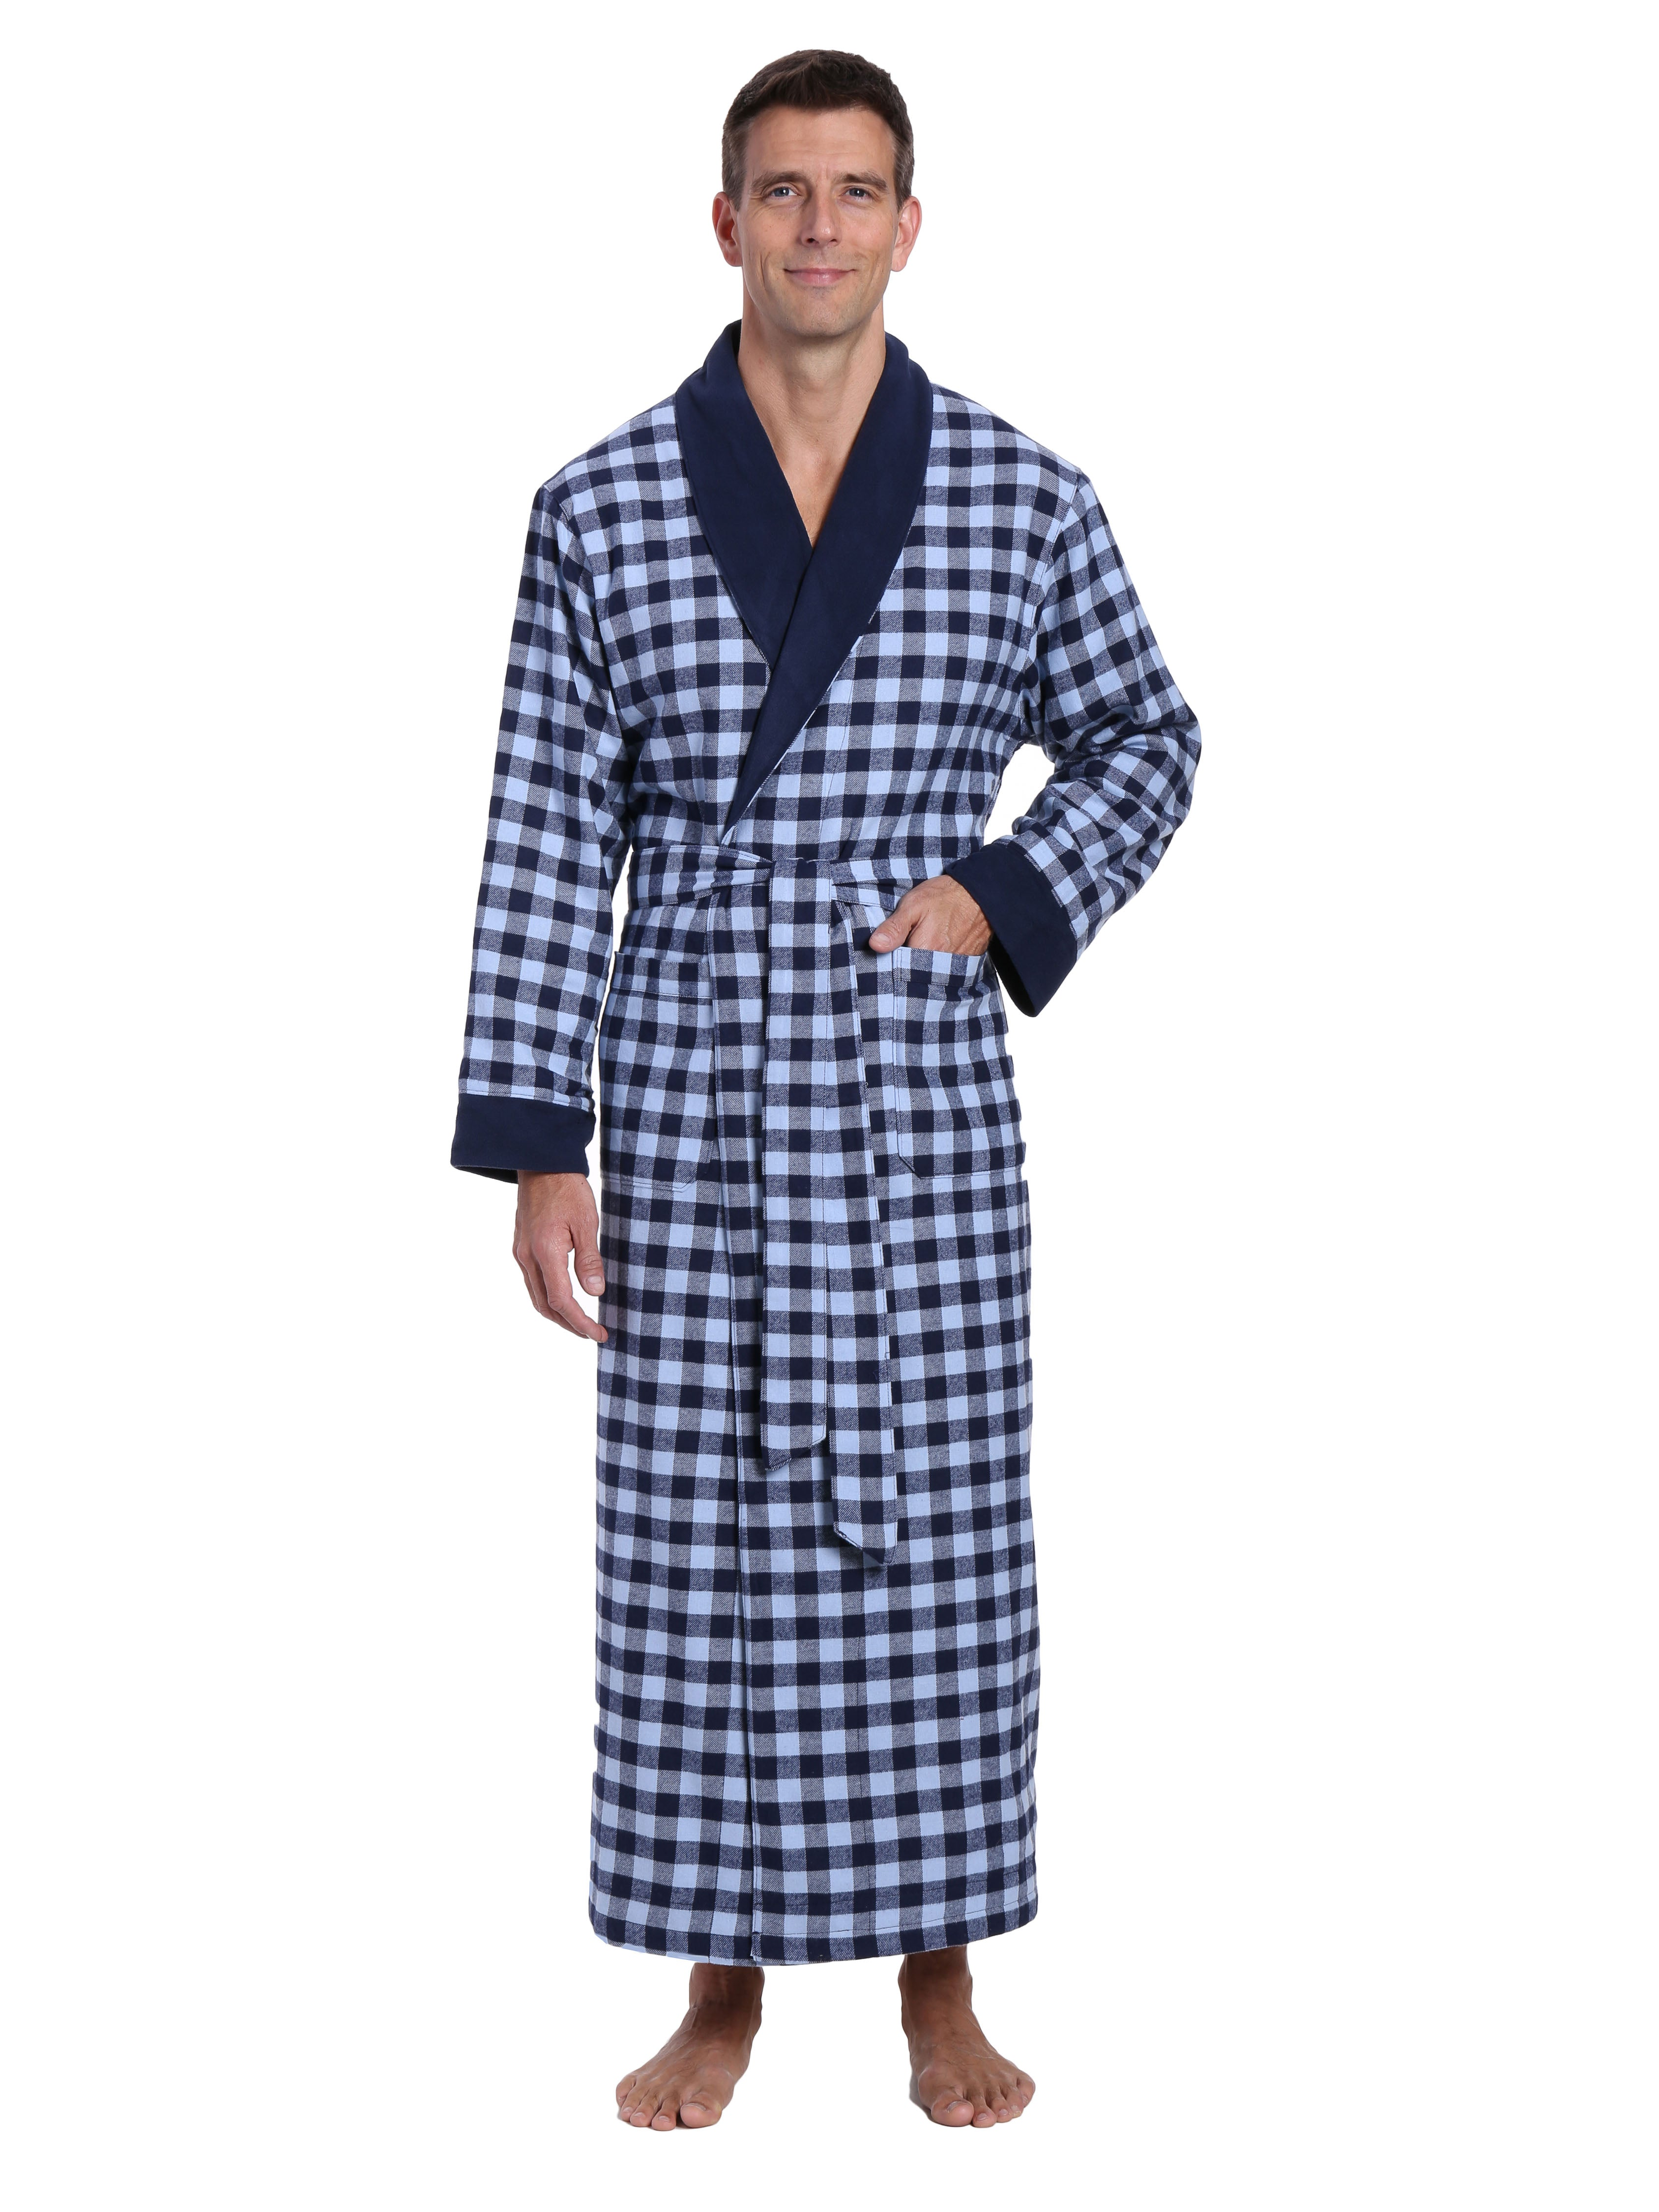 Mens Premium 100% Cotton Flannel Fleece Lined Robe - Gingham Checks - Navy Blue